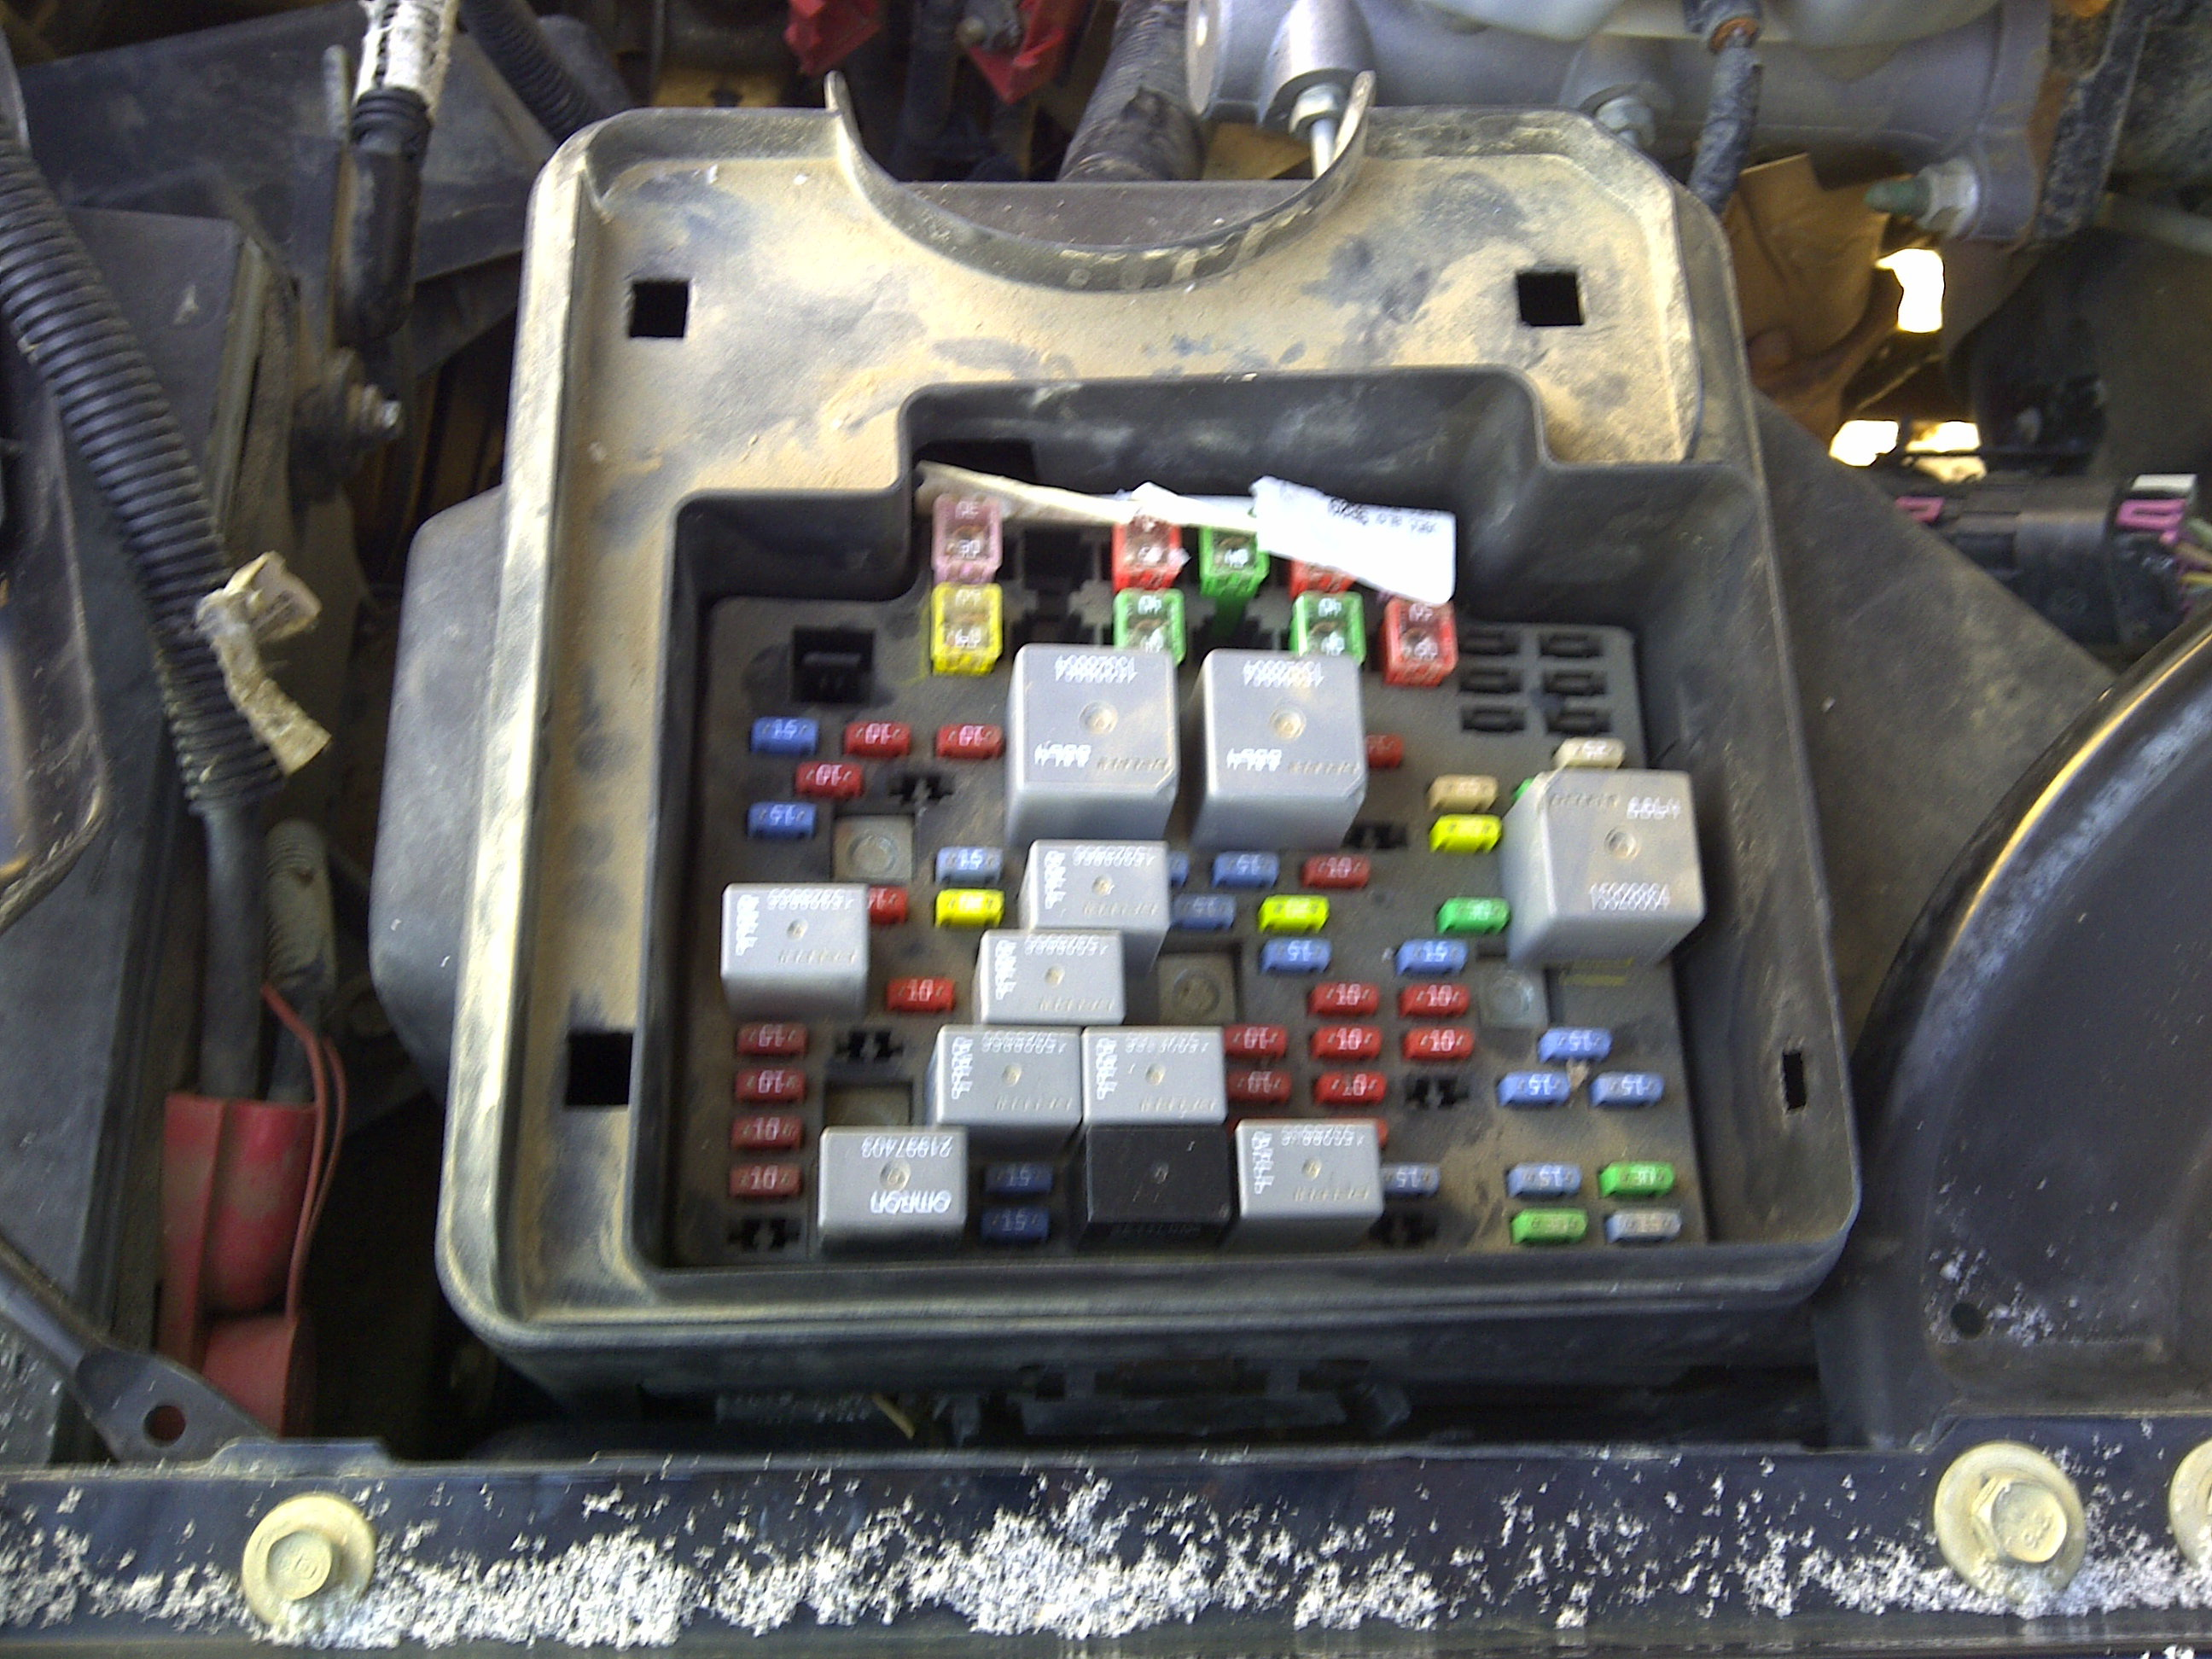 2010 chevy truck fuse box diagram gmc 2500 series i have a 2007 gmc sierra classic 2500 crew #4